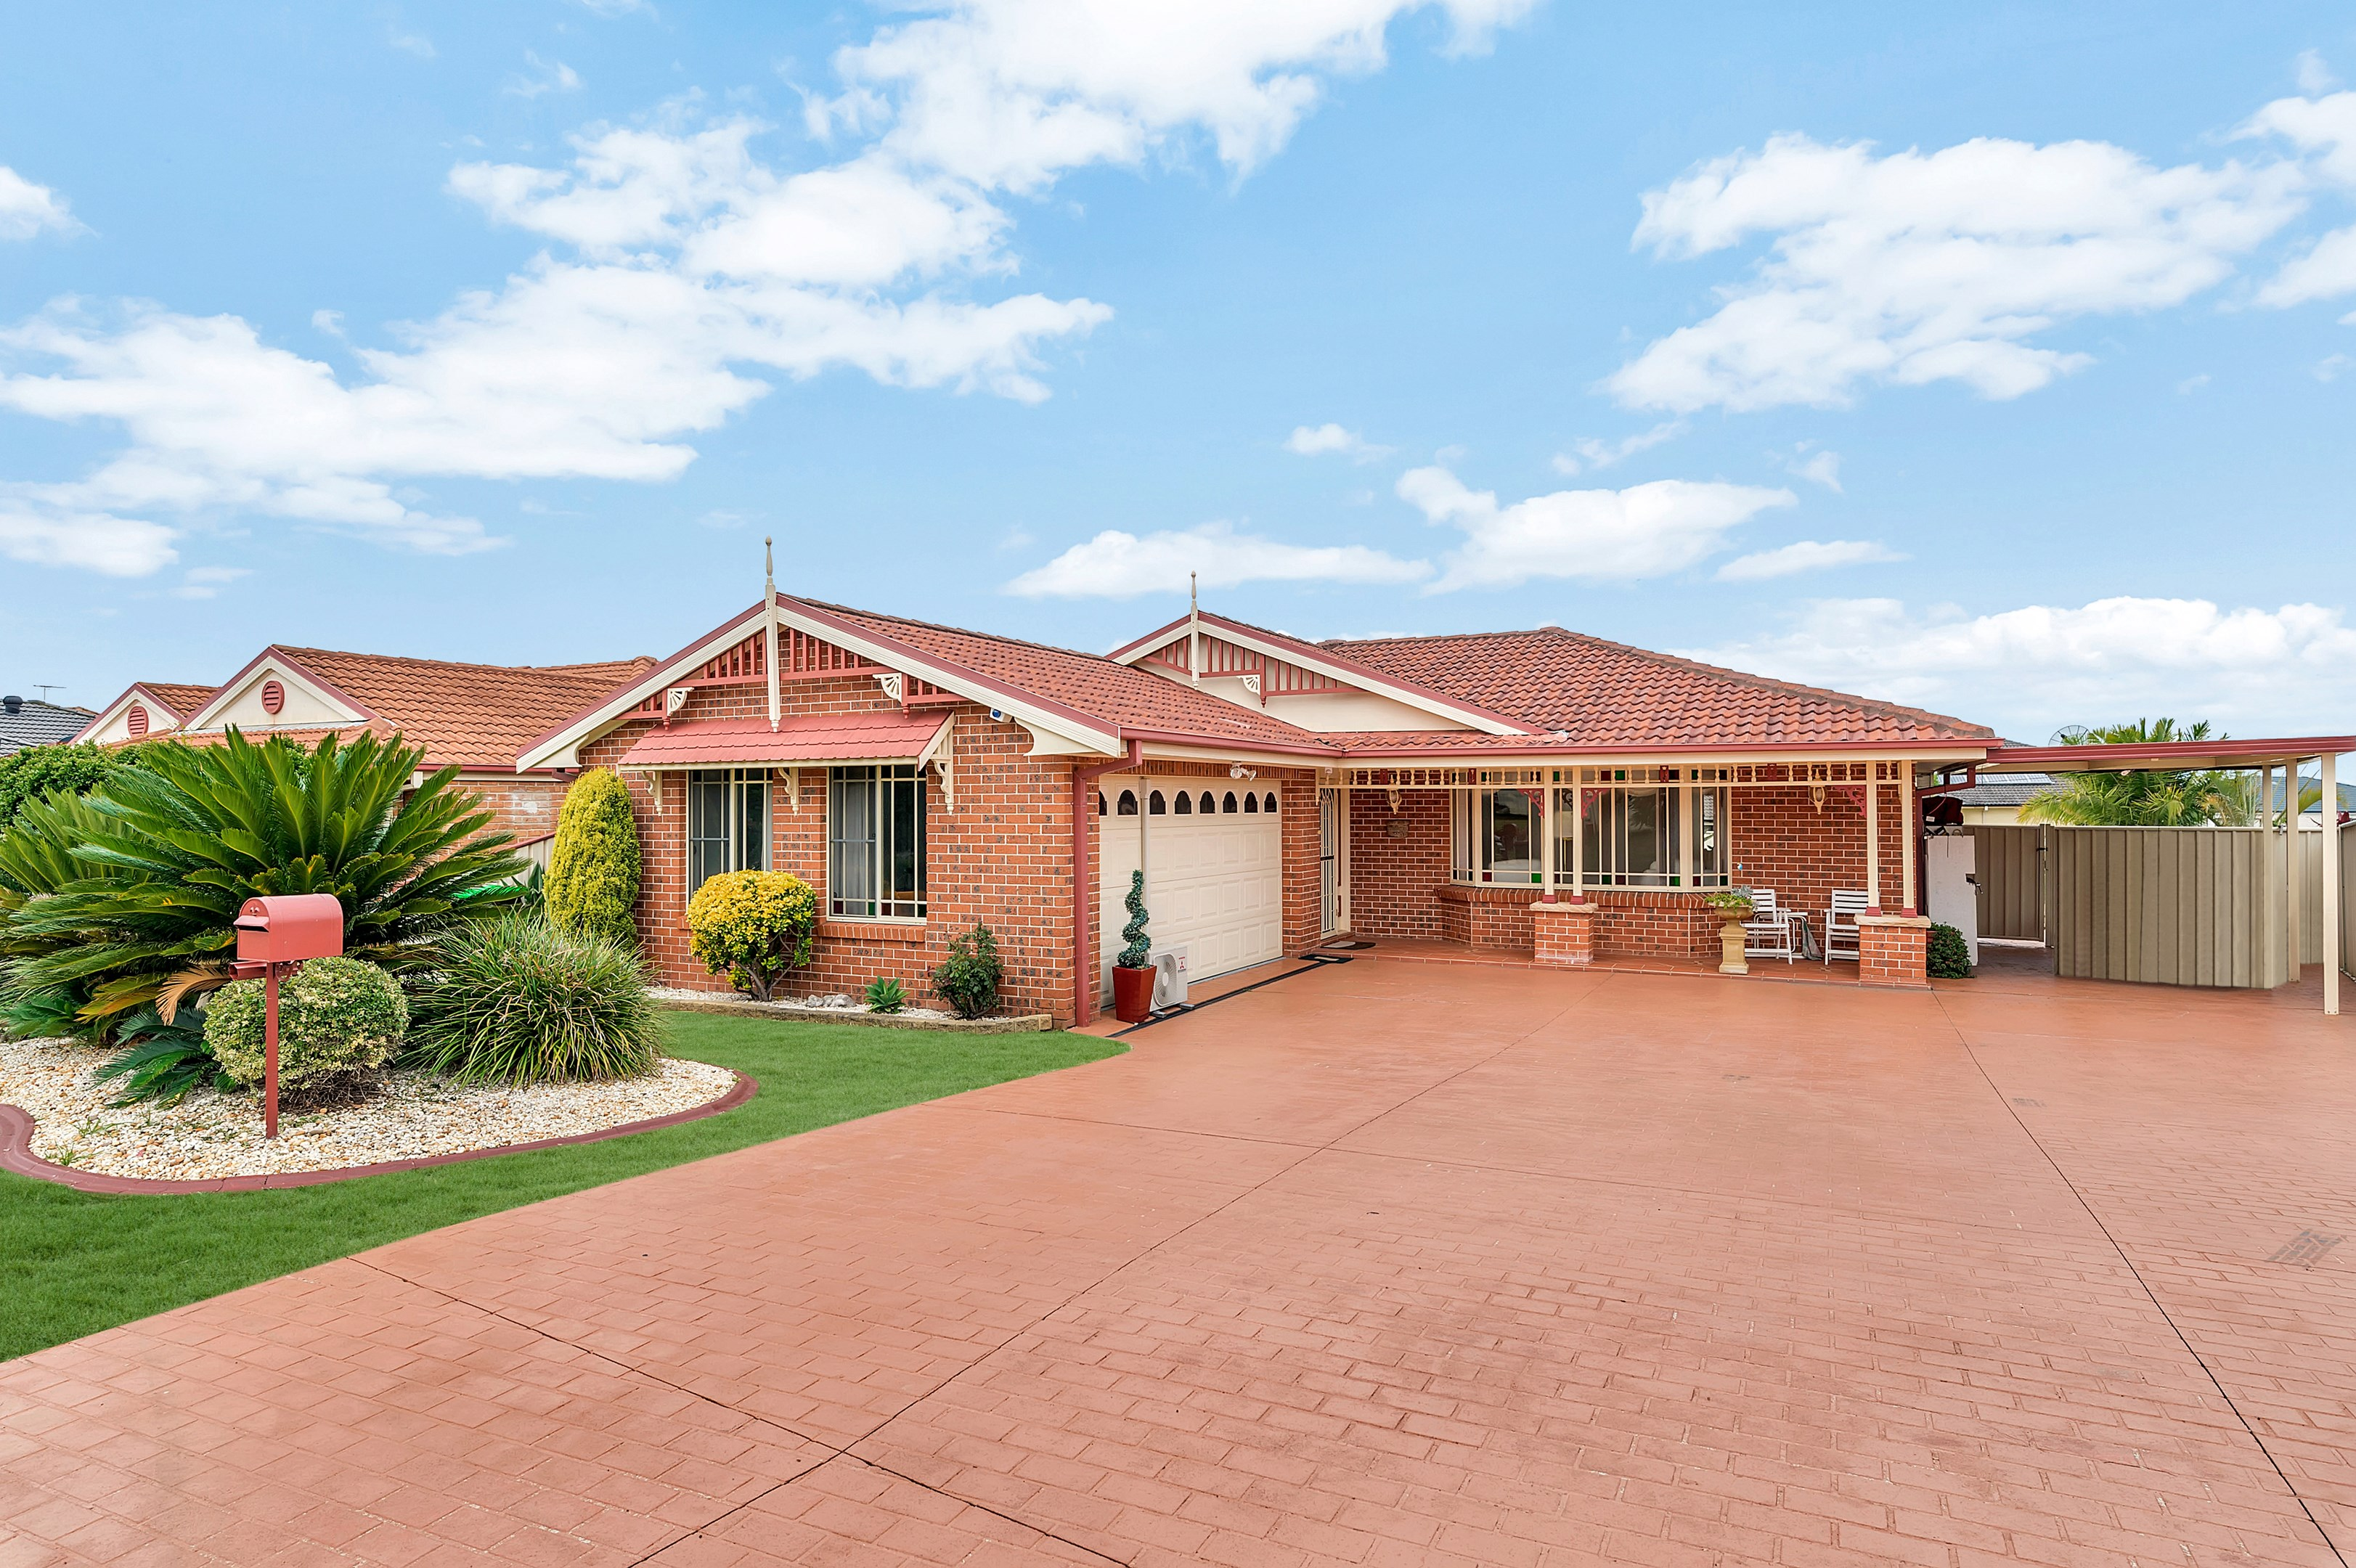 29 mitchell drive west hoxton nsw 2171 house for sale for Mitchell homes price list